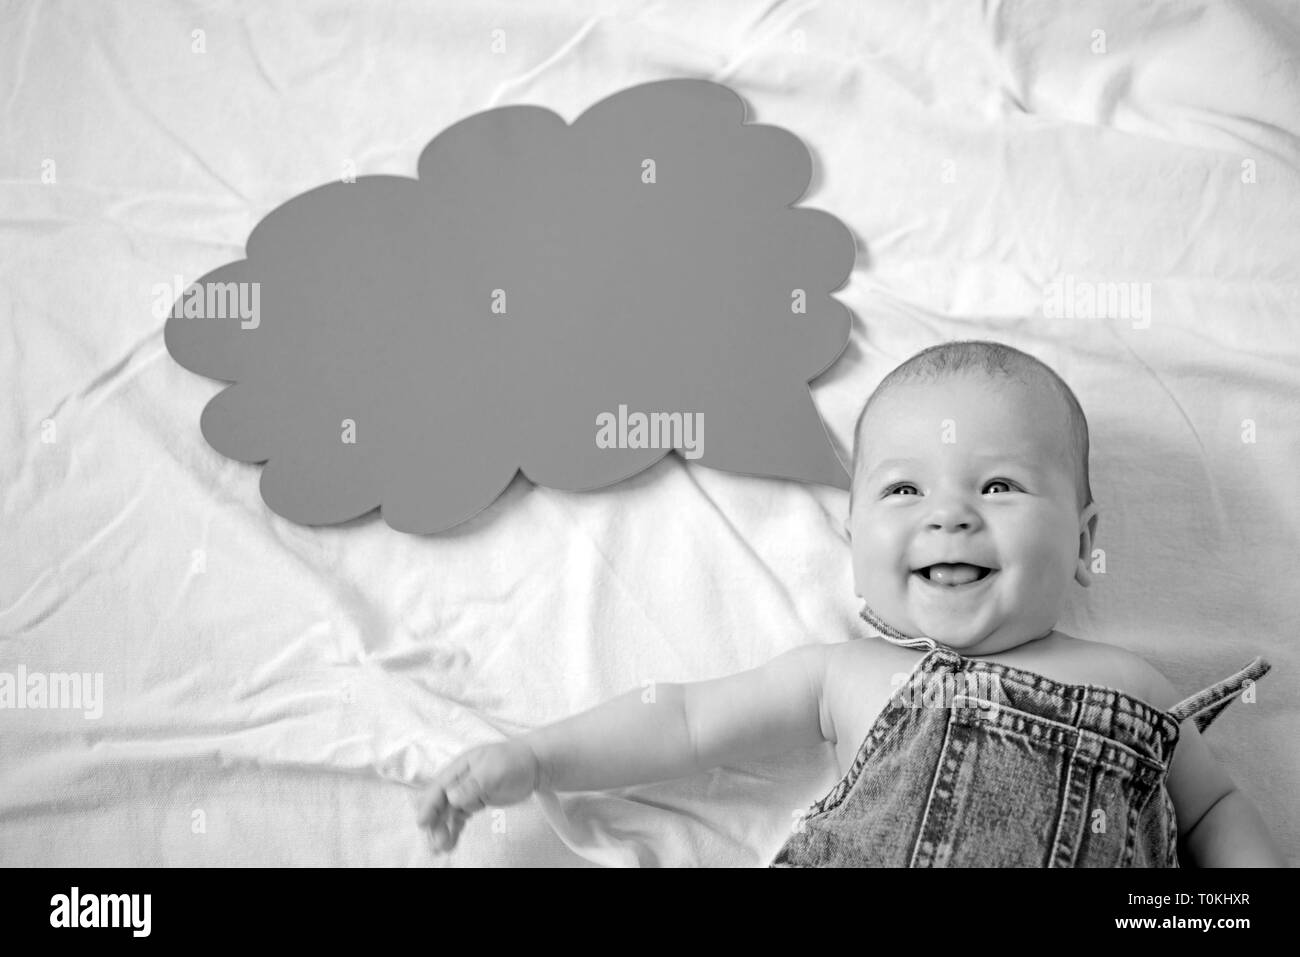 I am so happy. Portrait of happy little child. Sweet little baby. New life and birth. Family. Child care. Childrens day. Small girl. I can speak. Word - Stock Image